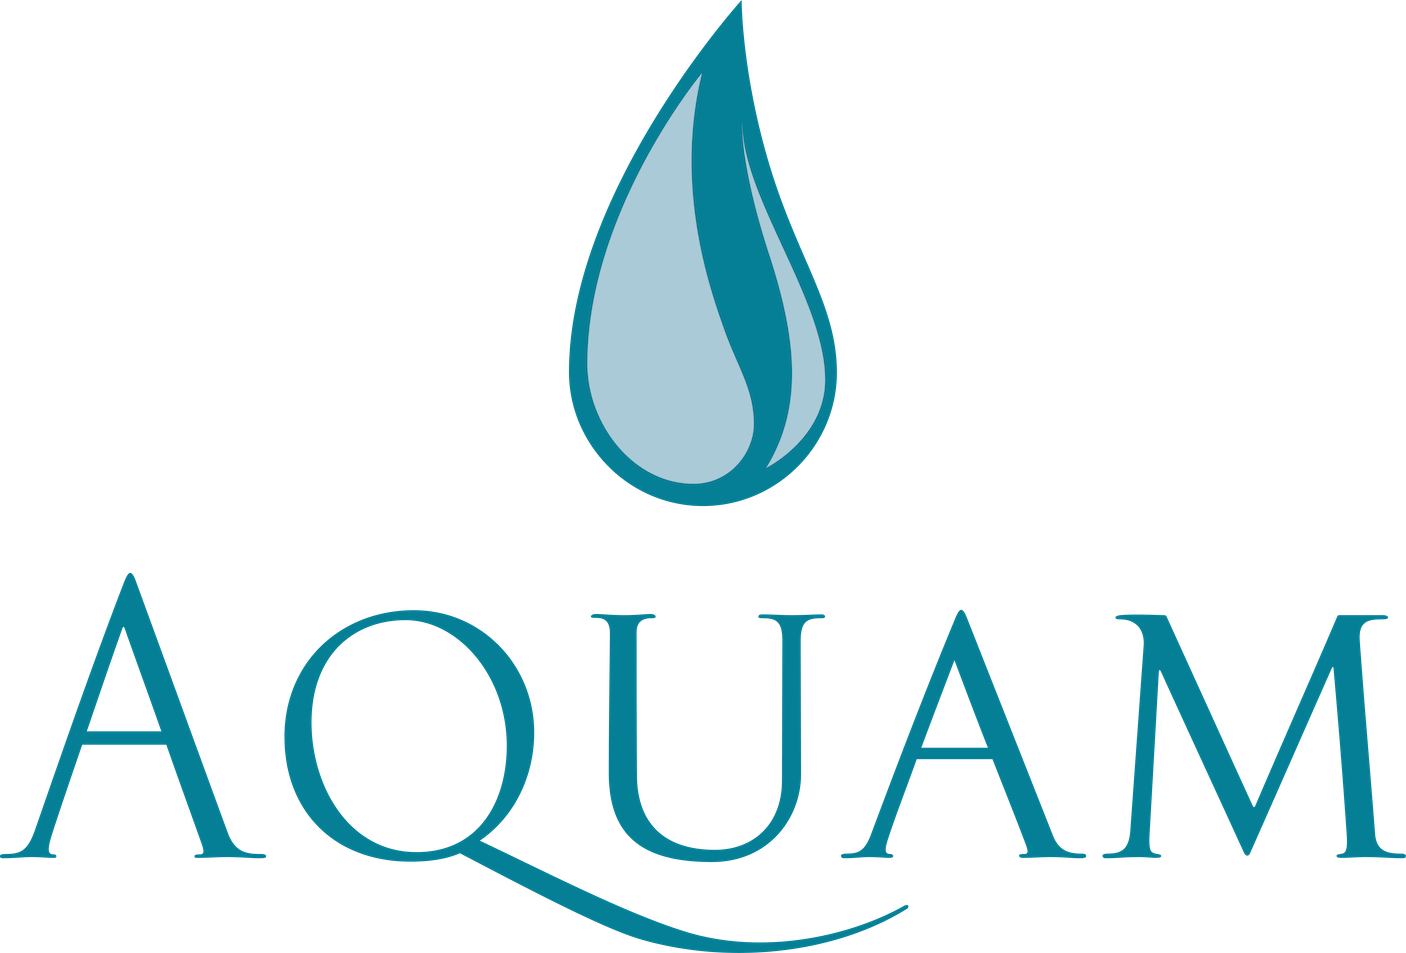 Aquam Corp. Announces the Divestiture of Aquam Water Services, Ltd. and Orbis Intelligent Systems, Inc.